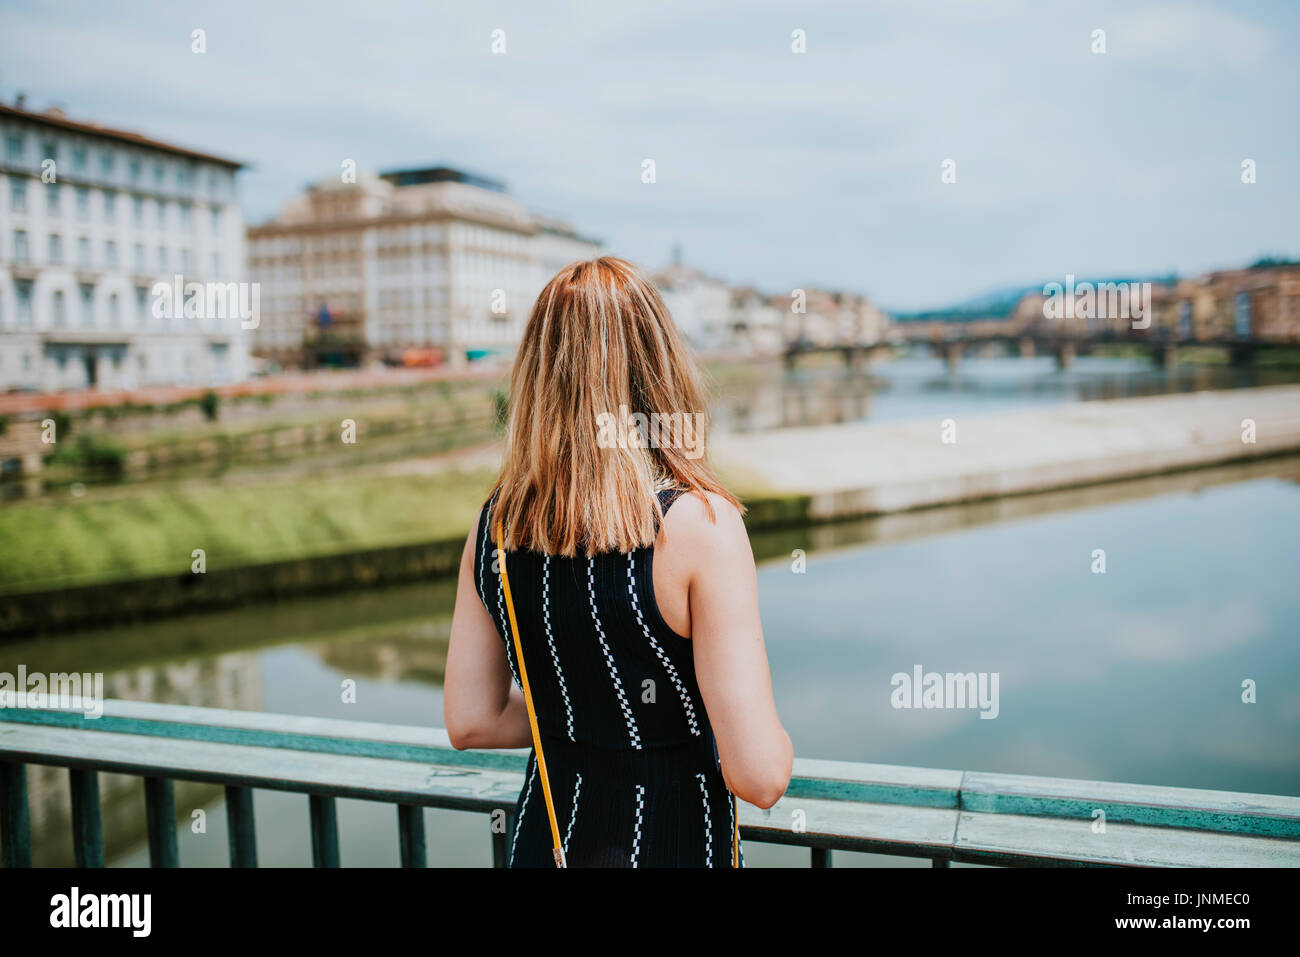 Woman standing on a bridge in Florence - Stock Image